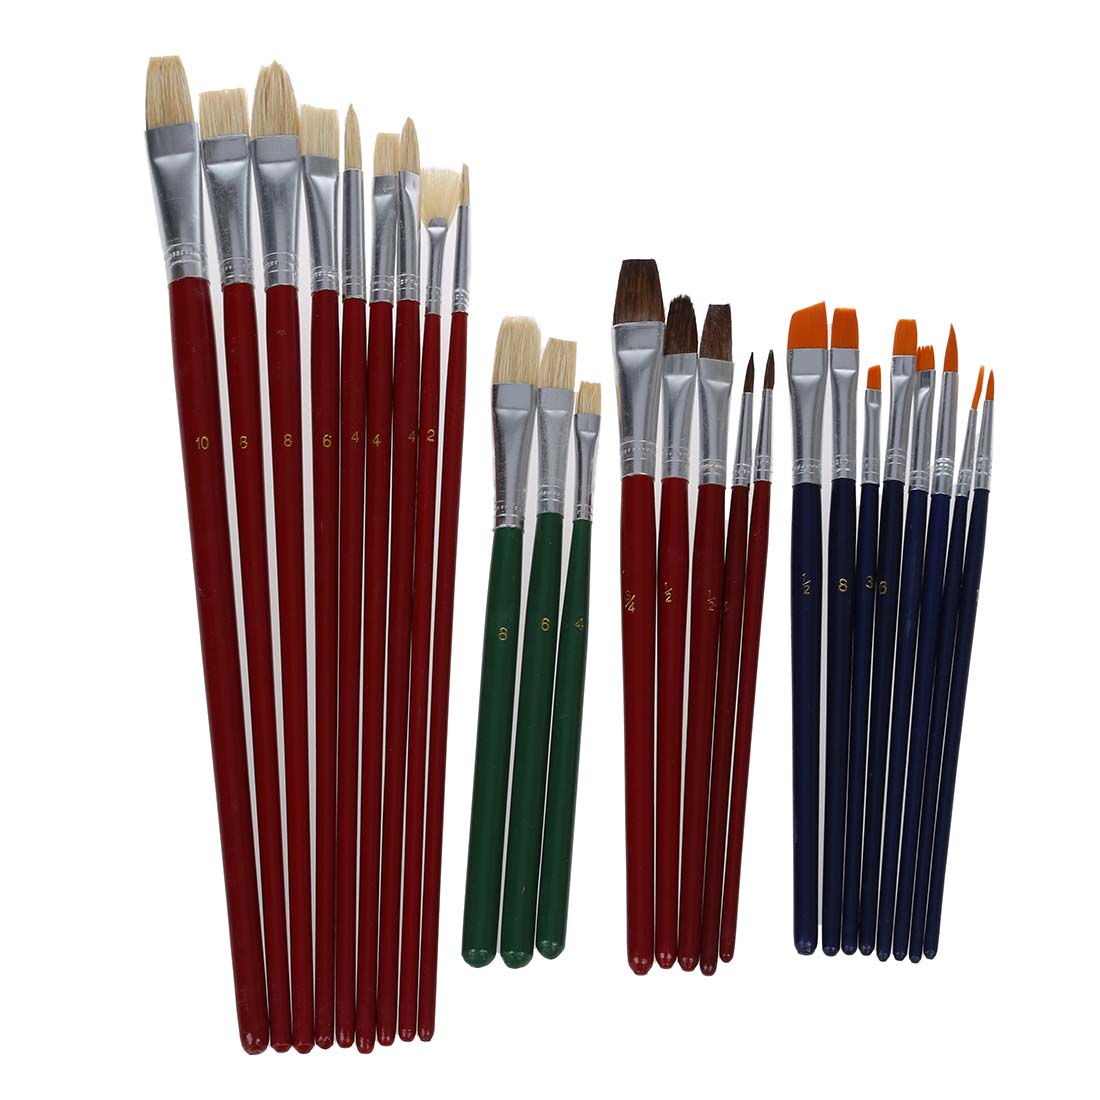 NEW 25 Brush Value Set For Oils Acrylic Watercolor HB-S17